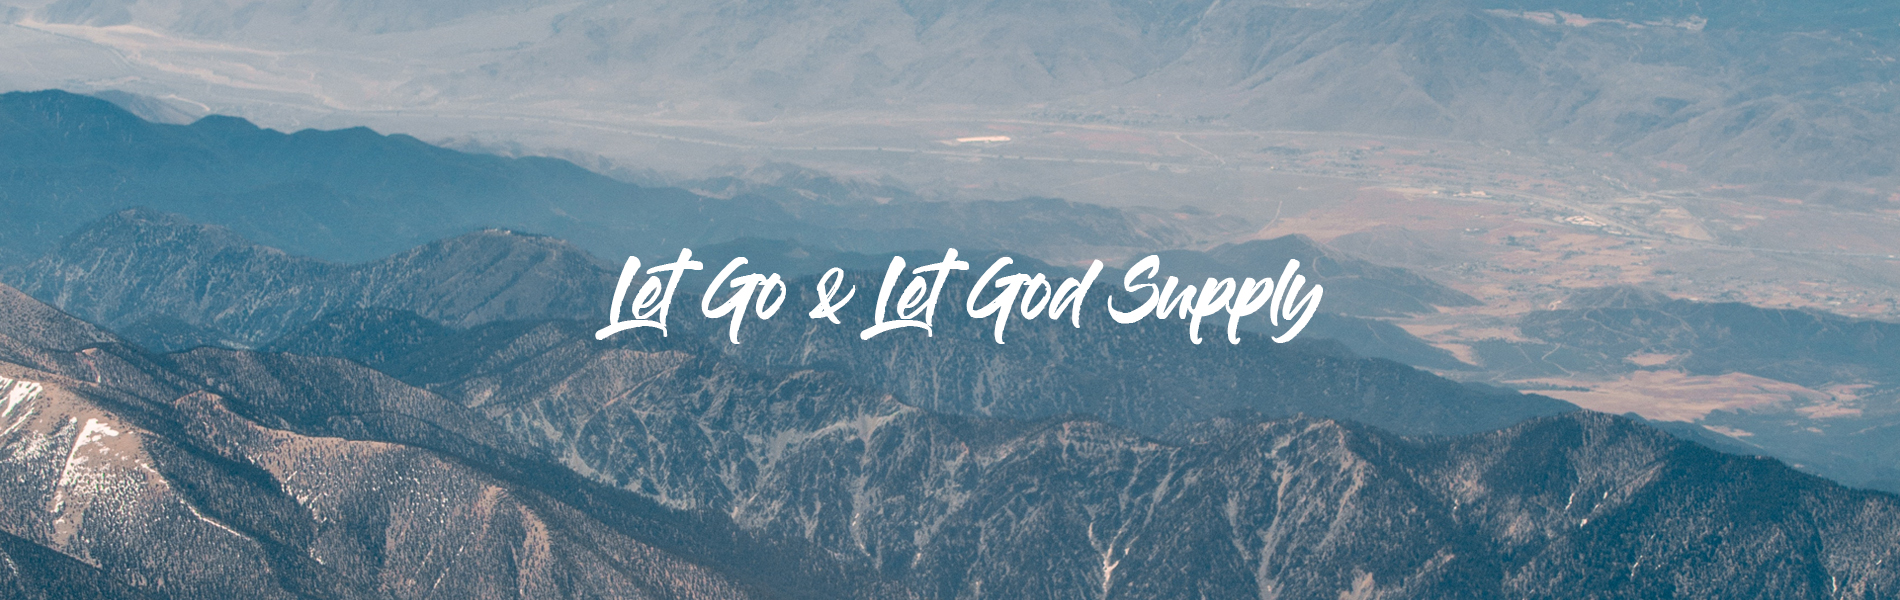 11-Nov_Let-Go--Let-God-Supply New Creation TV | Broadcasting the Gospel of Jesus